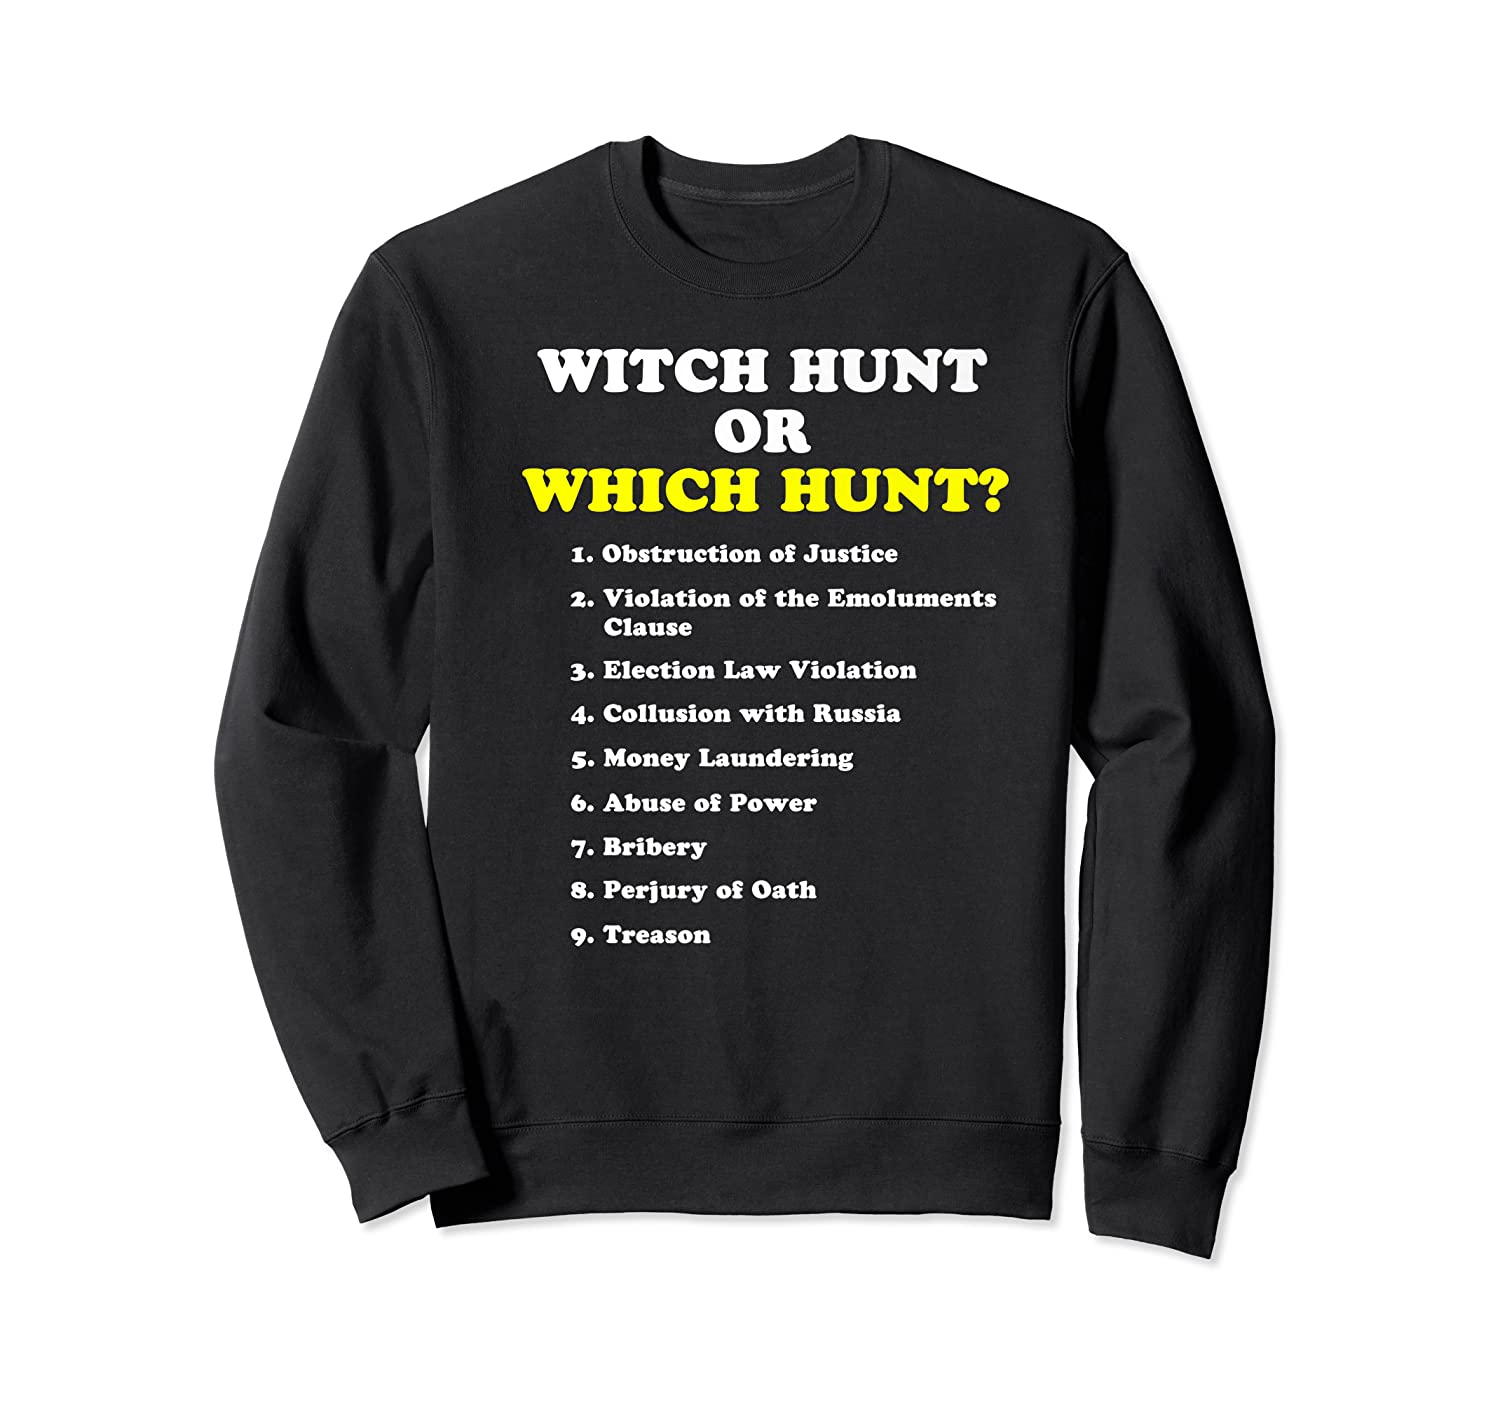 Witch Hunt Or Which Hunt 9 Reasons To Impeach Trump T Shirt Crewneck Sweater